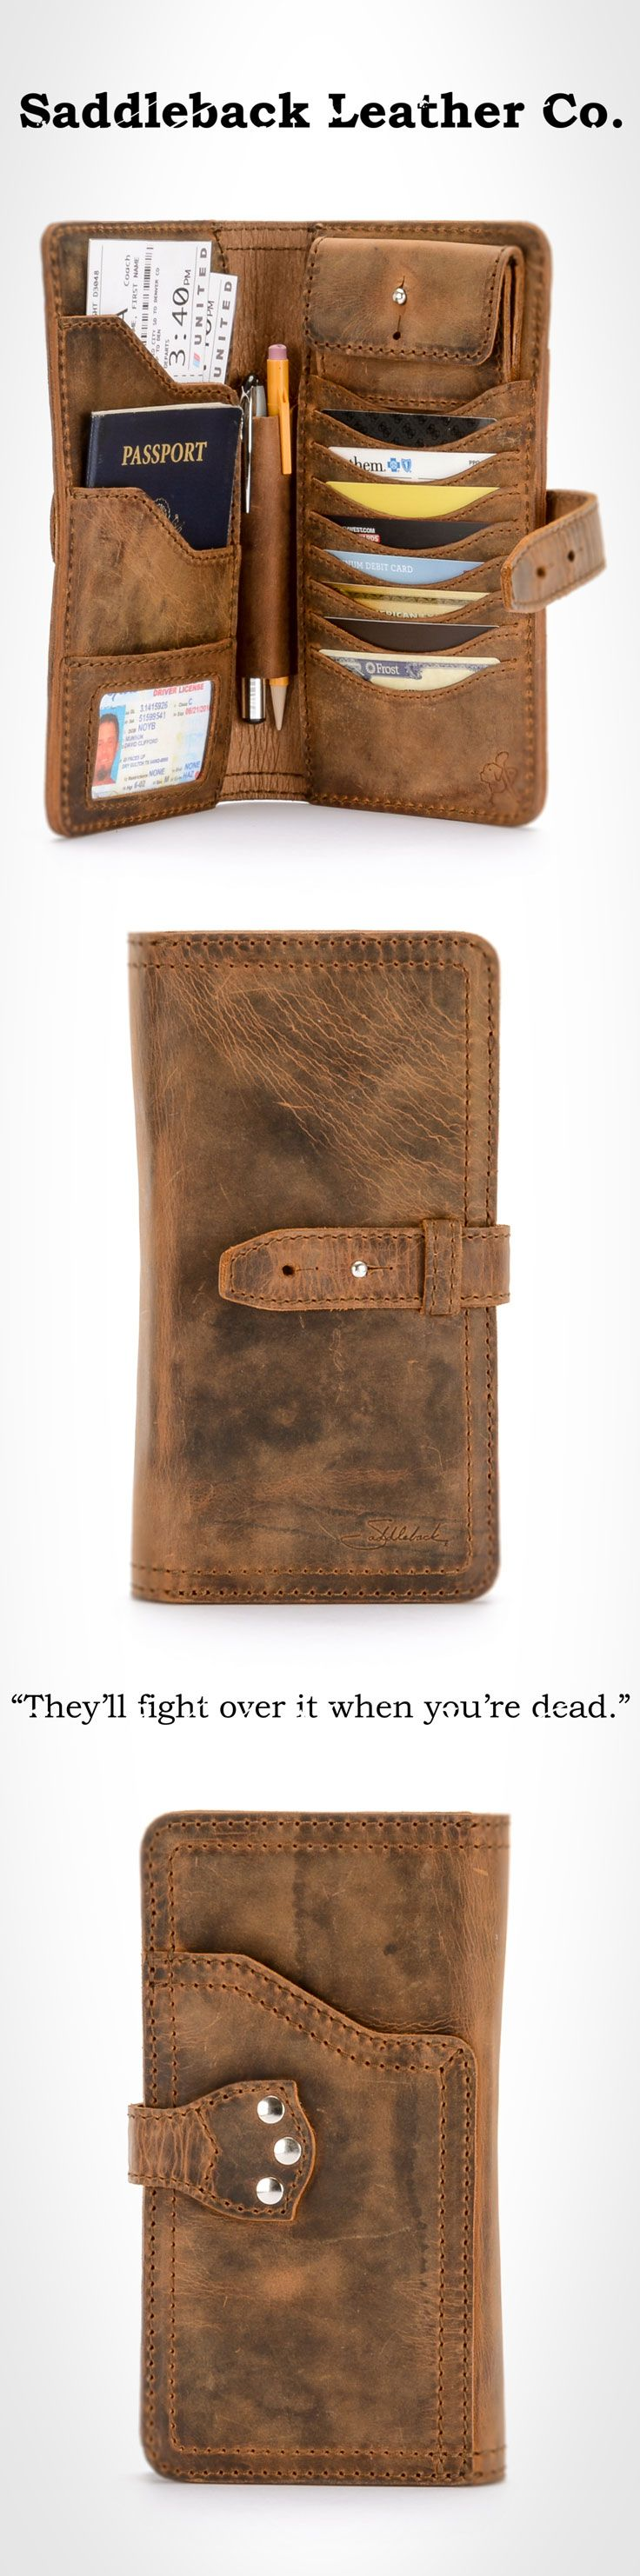 The Saddleback Leather Big Wallet in Tobacco | 100 Year Warranty | $178.00 | Raddest Men's Fashion Looks On The Internet: http://www.raddestlooks.org